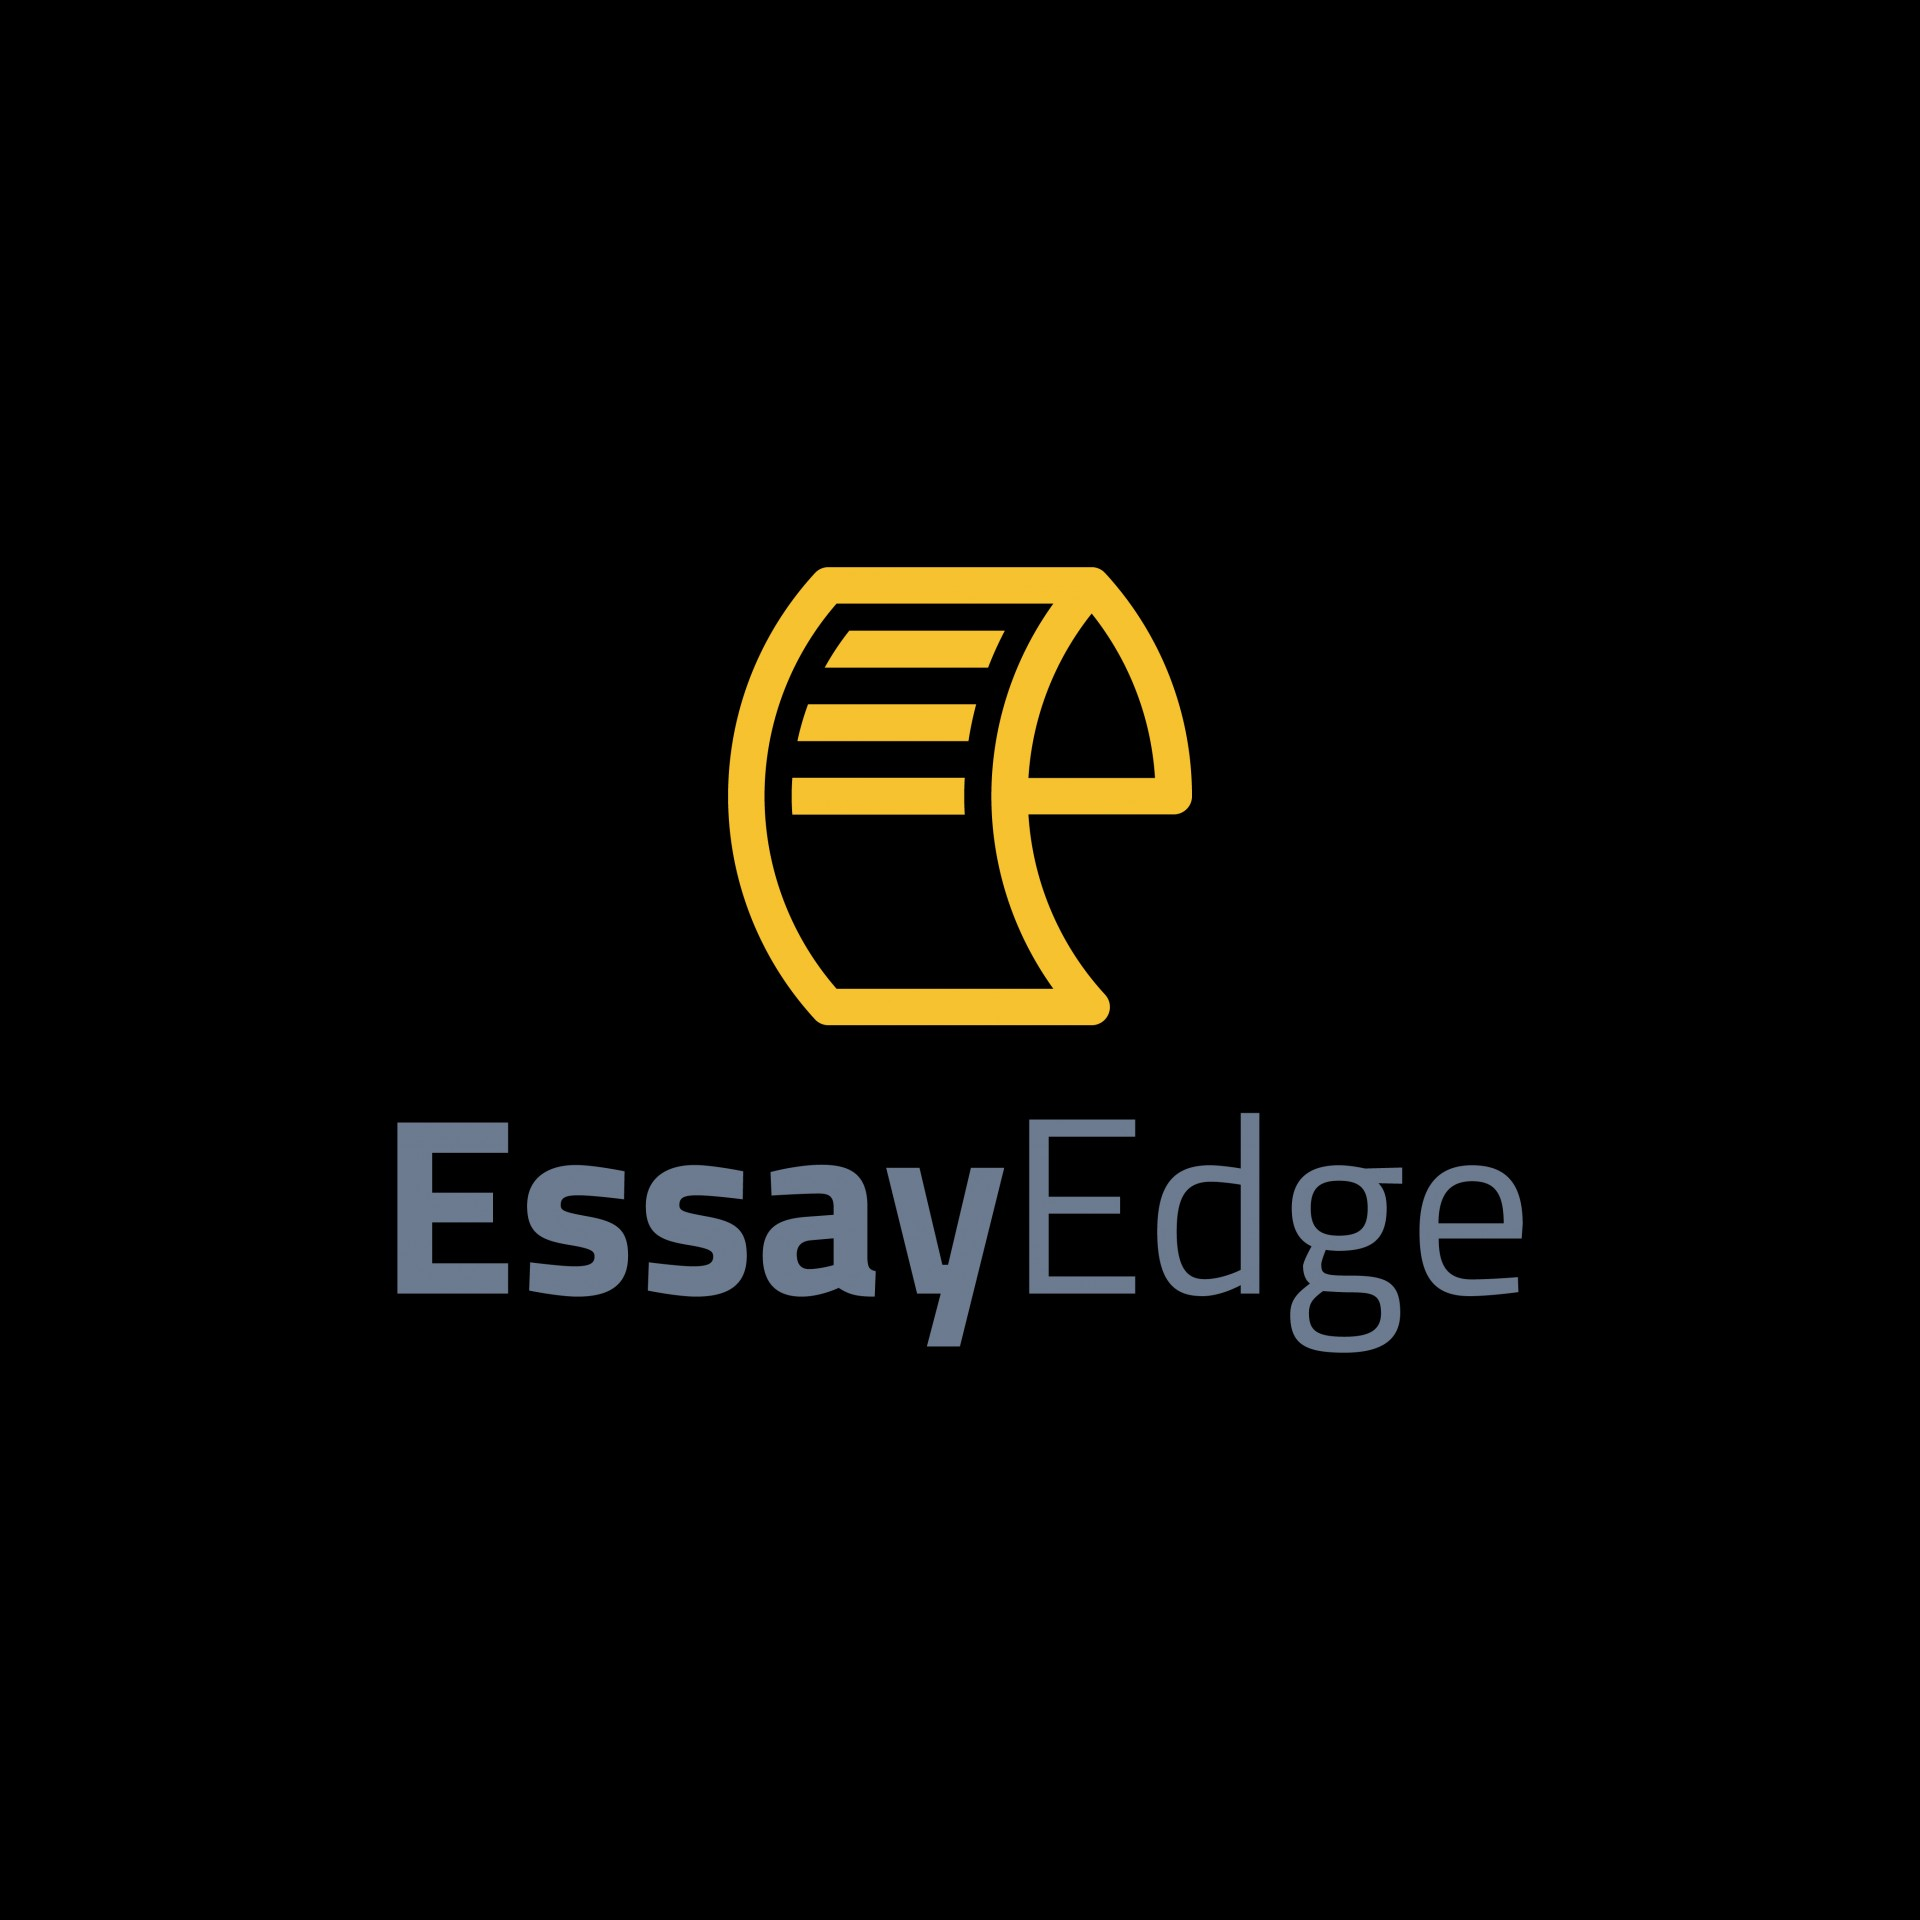 001 Essay Edge Final Png Unusual Essayedge Review Coupon Code 1920